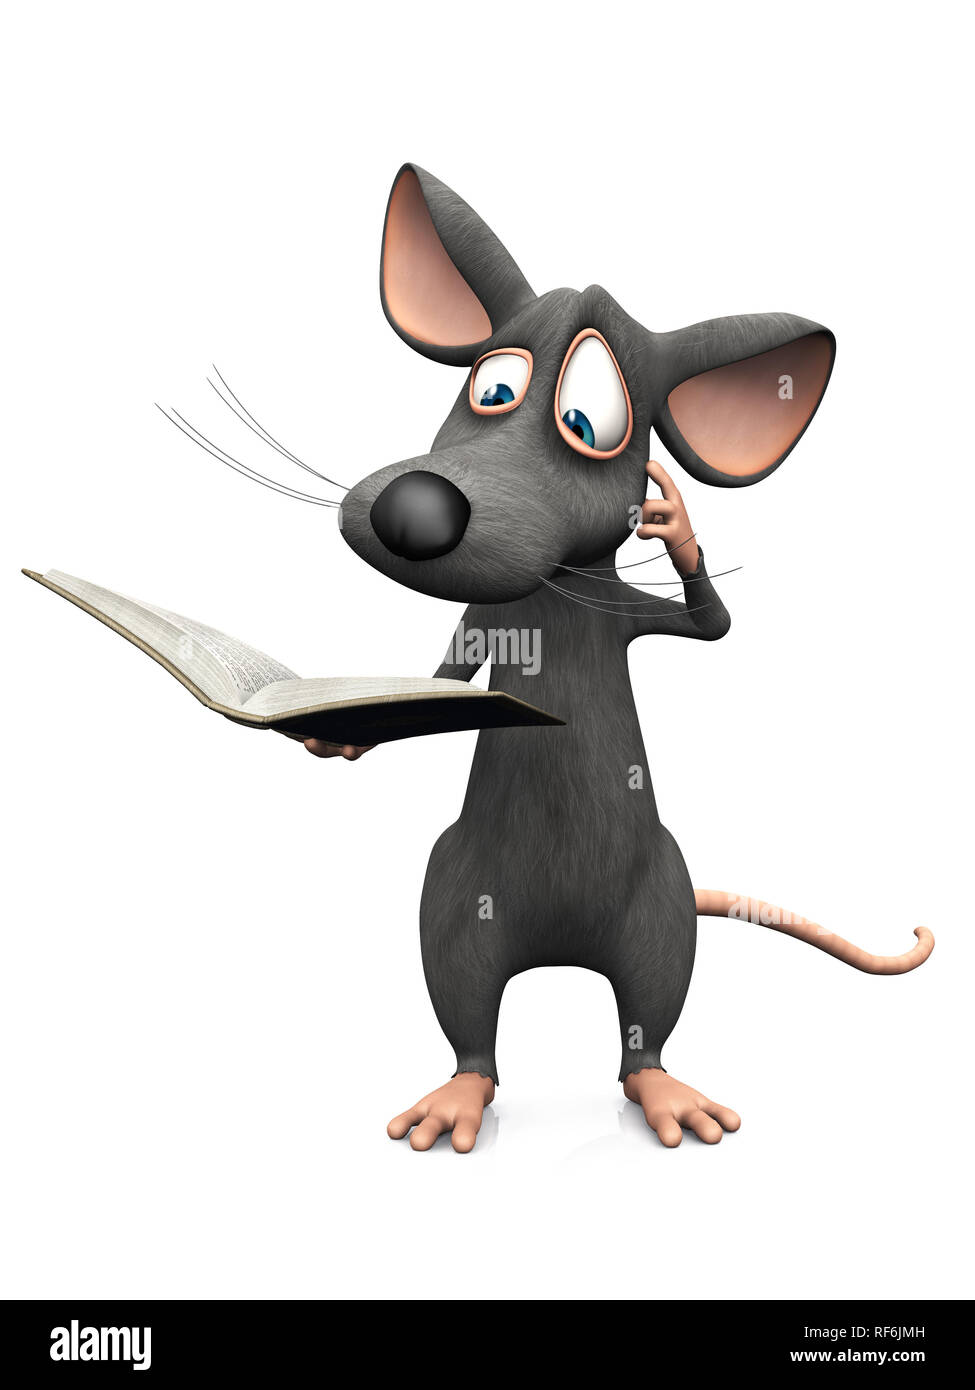 A cute cartoon mouse reading a book and looking very confused. White background. - Stock Image